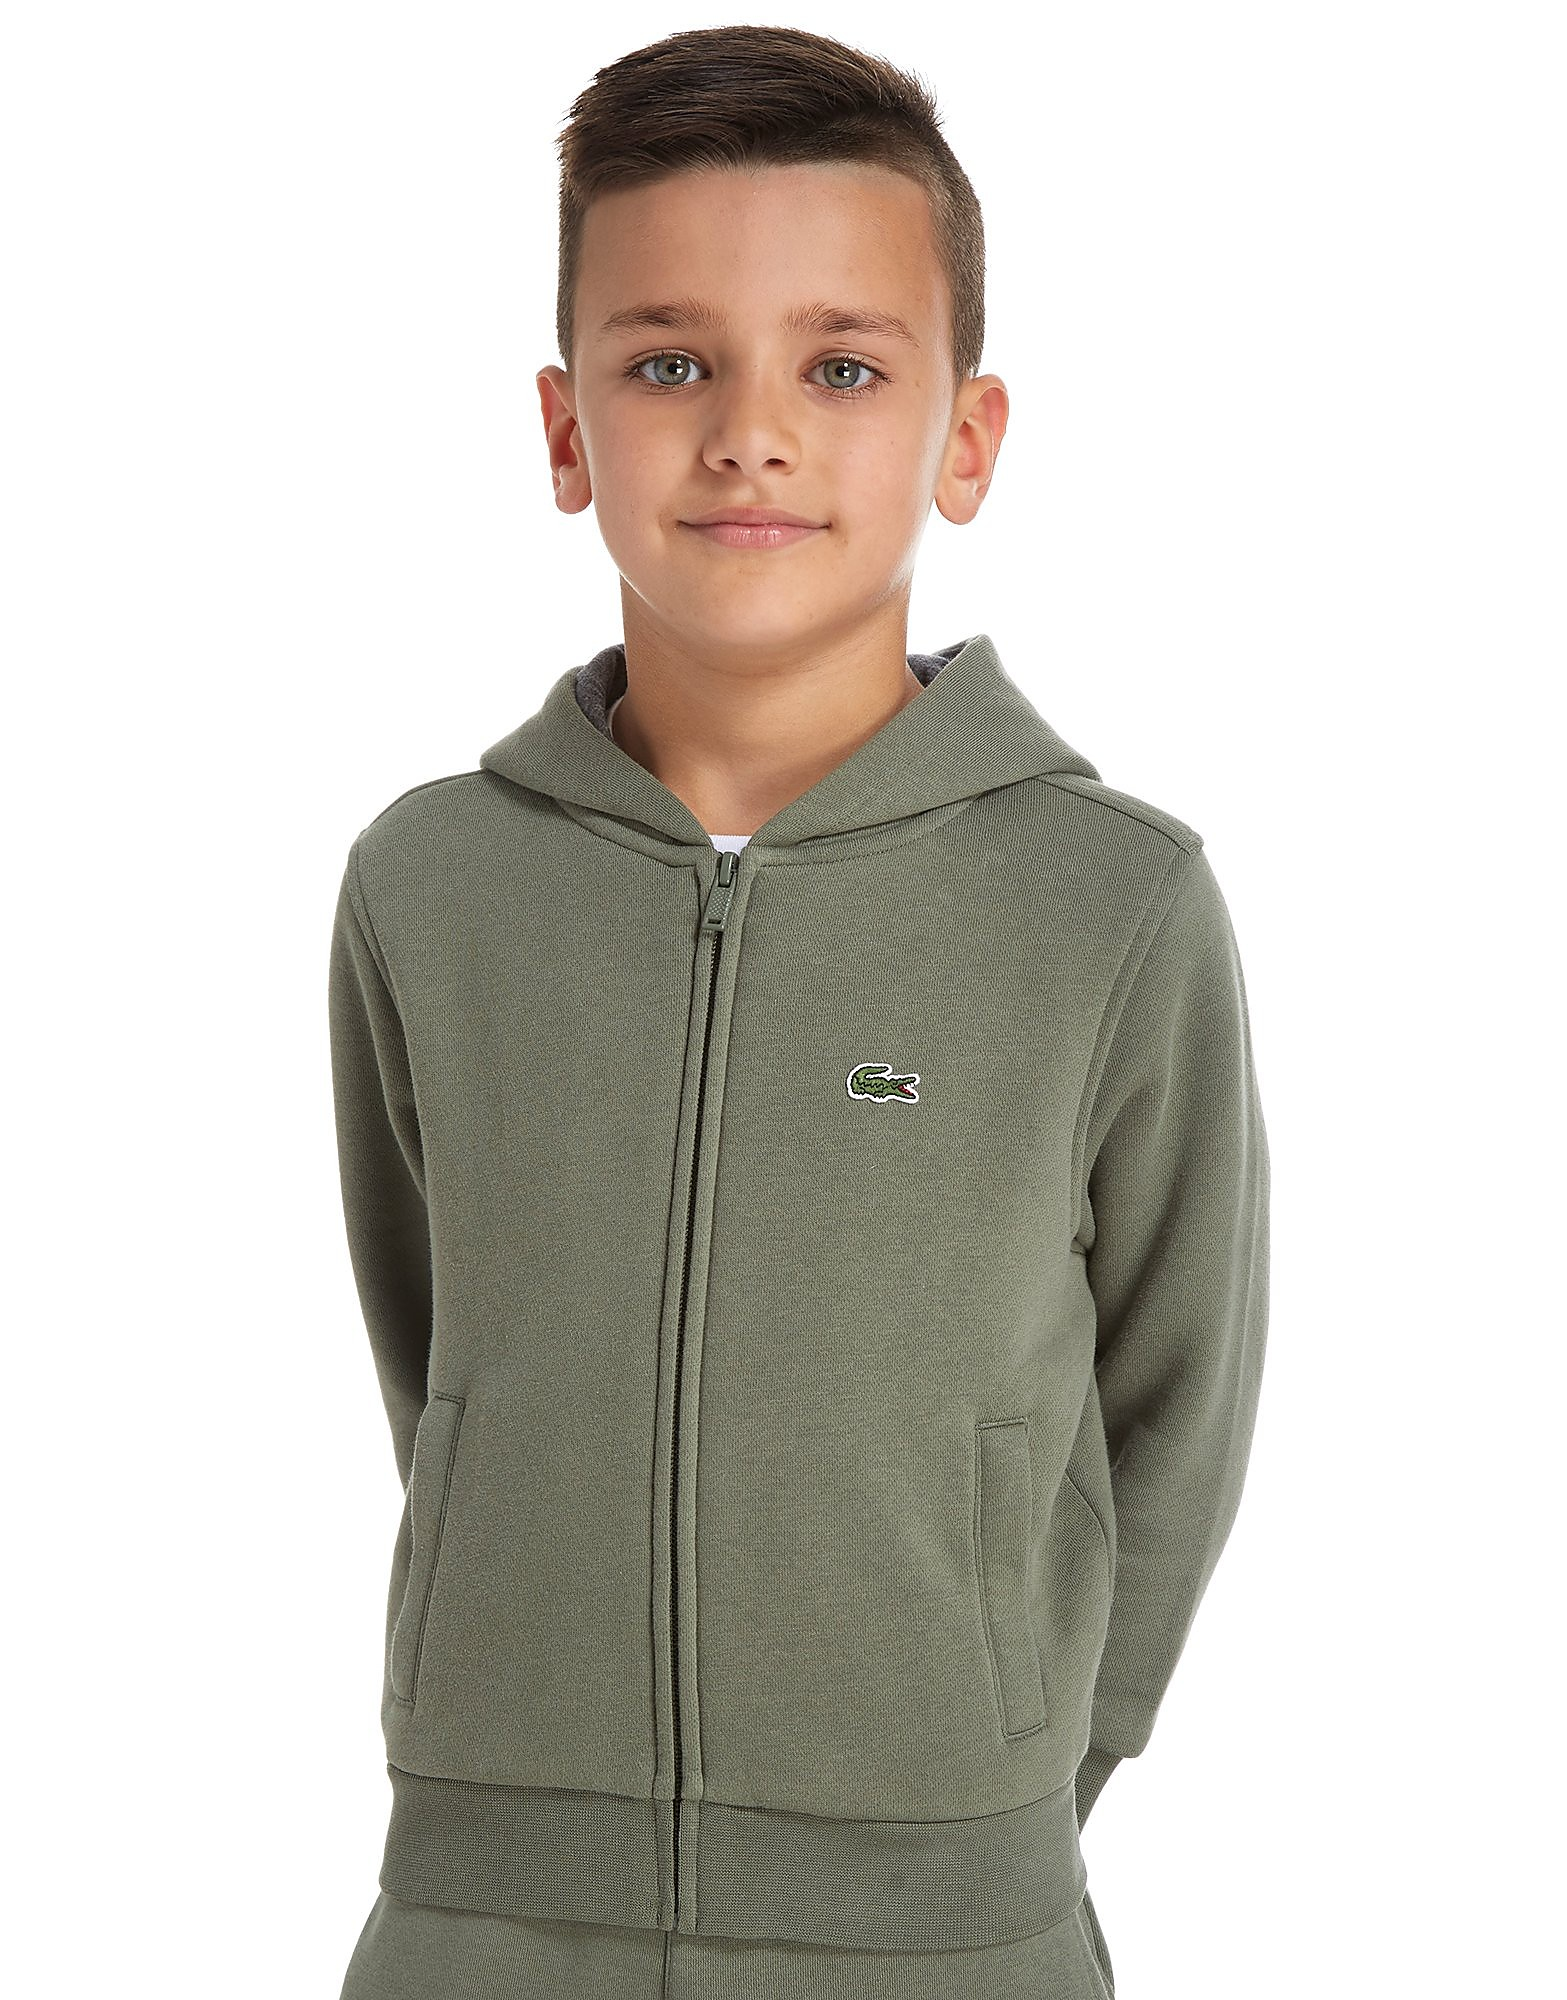 Lacoste Small Logo Hoody Children